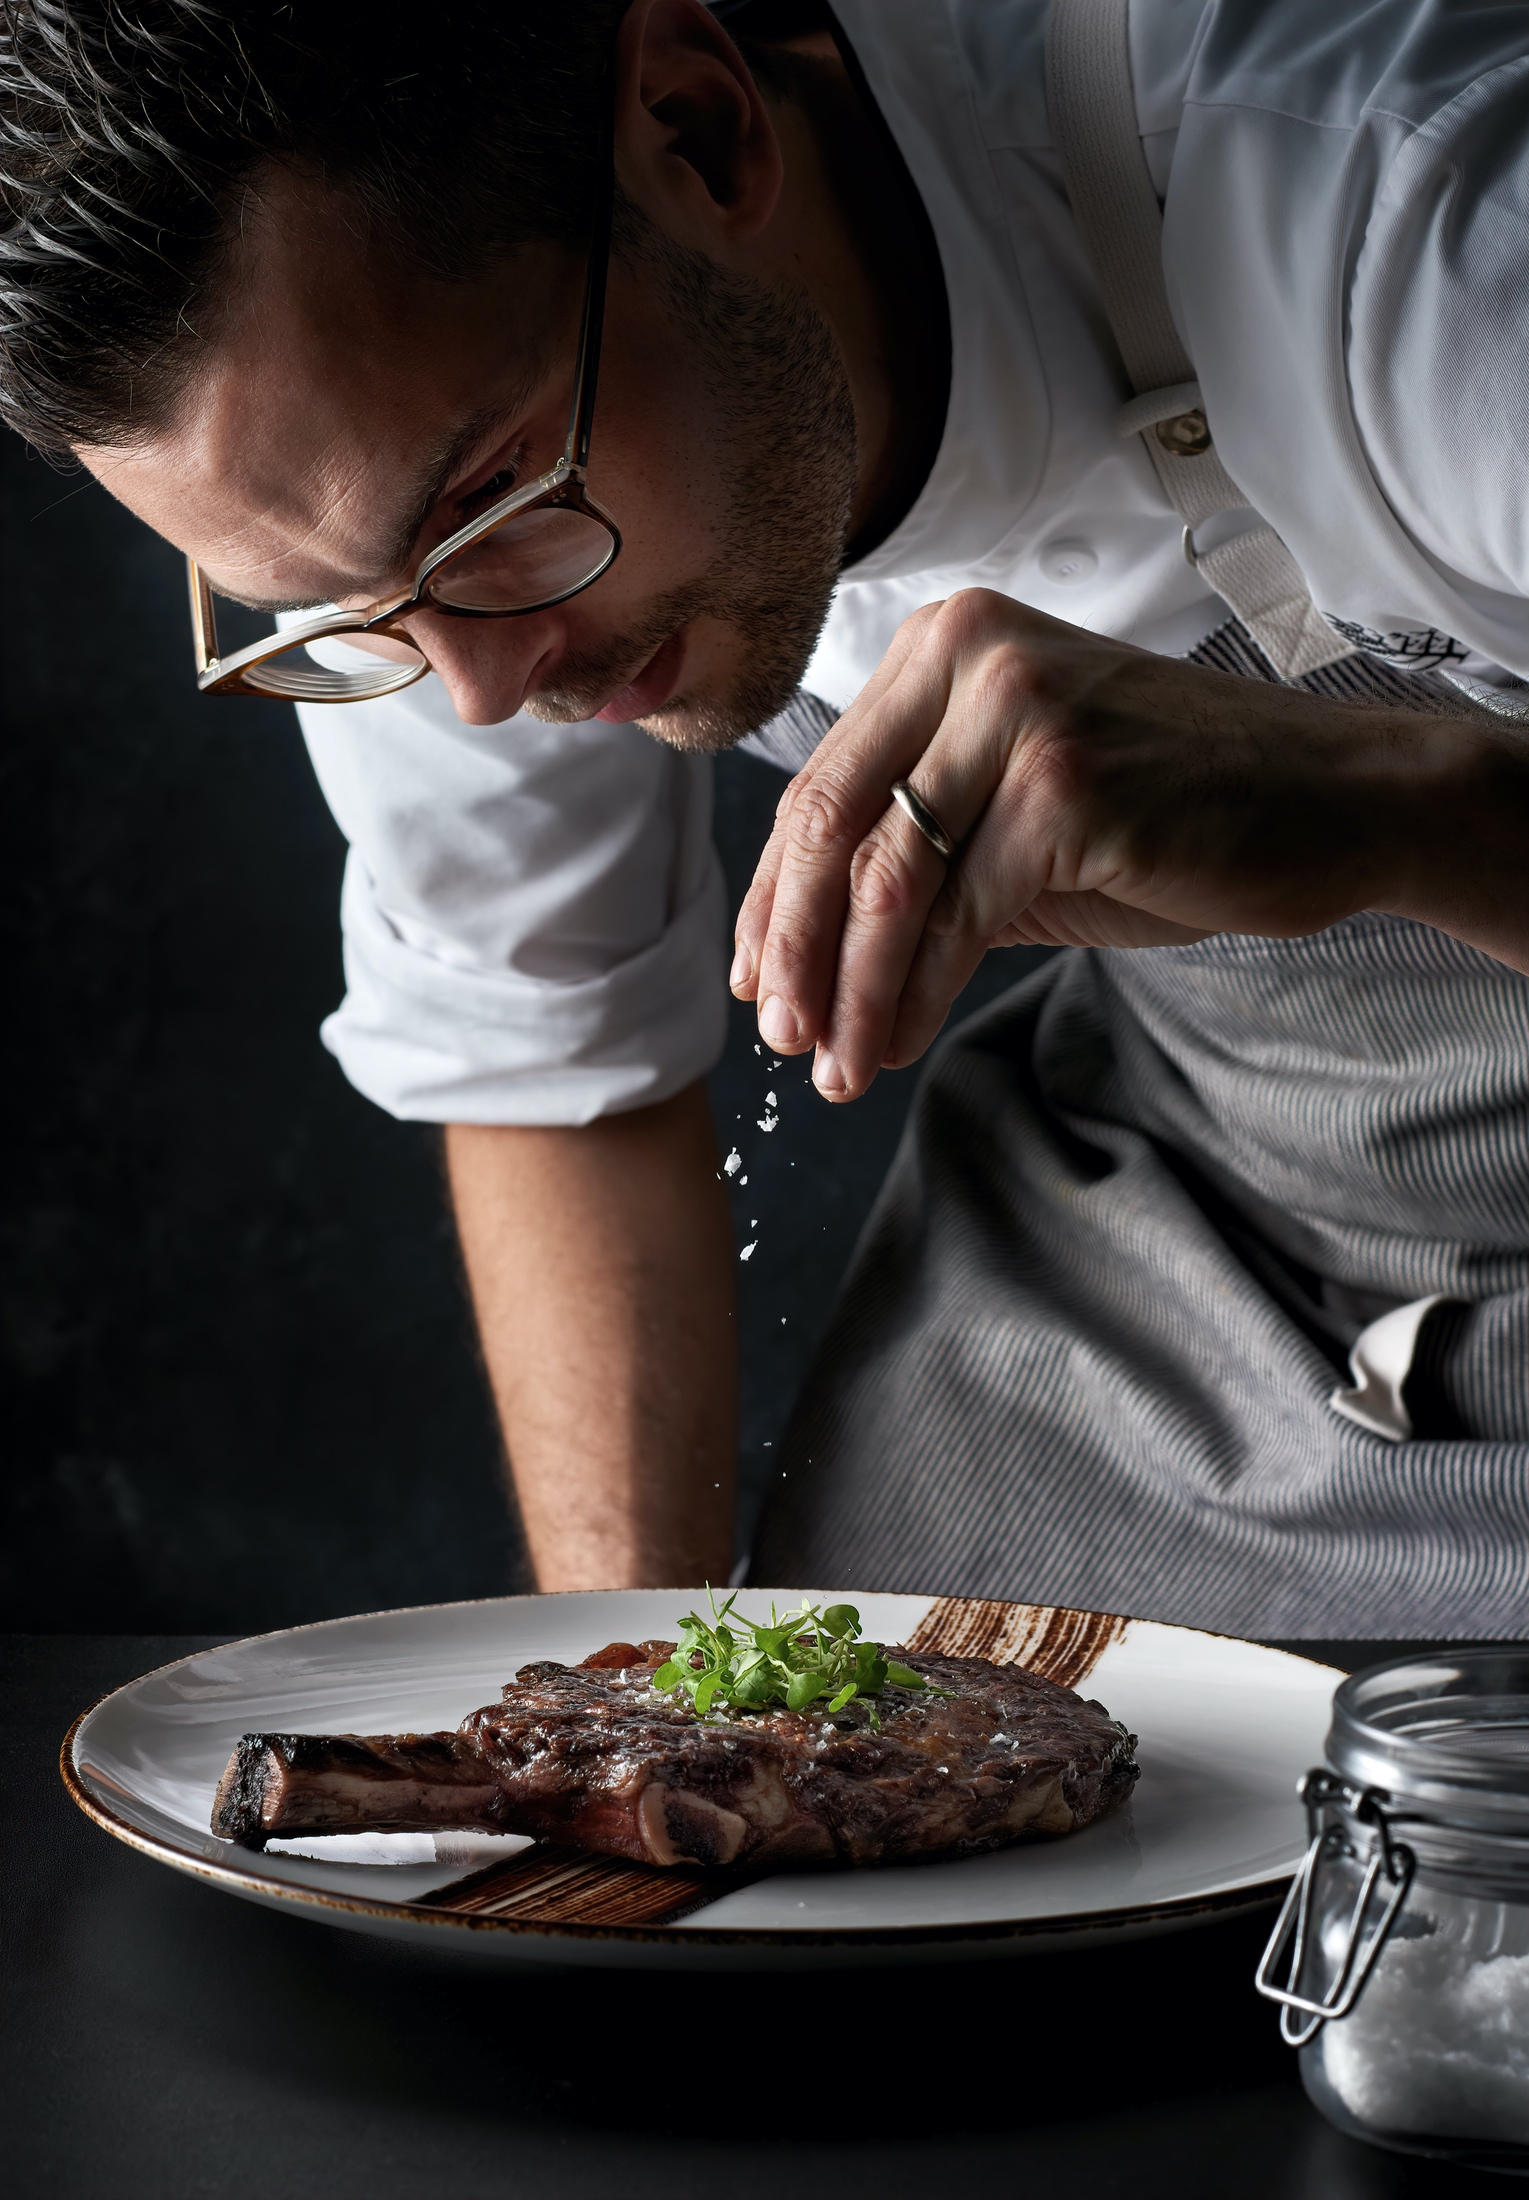 Portrait_four_seasons_capa_steakhouse_chef_seasoning_commercial_food_photographer